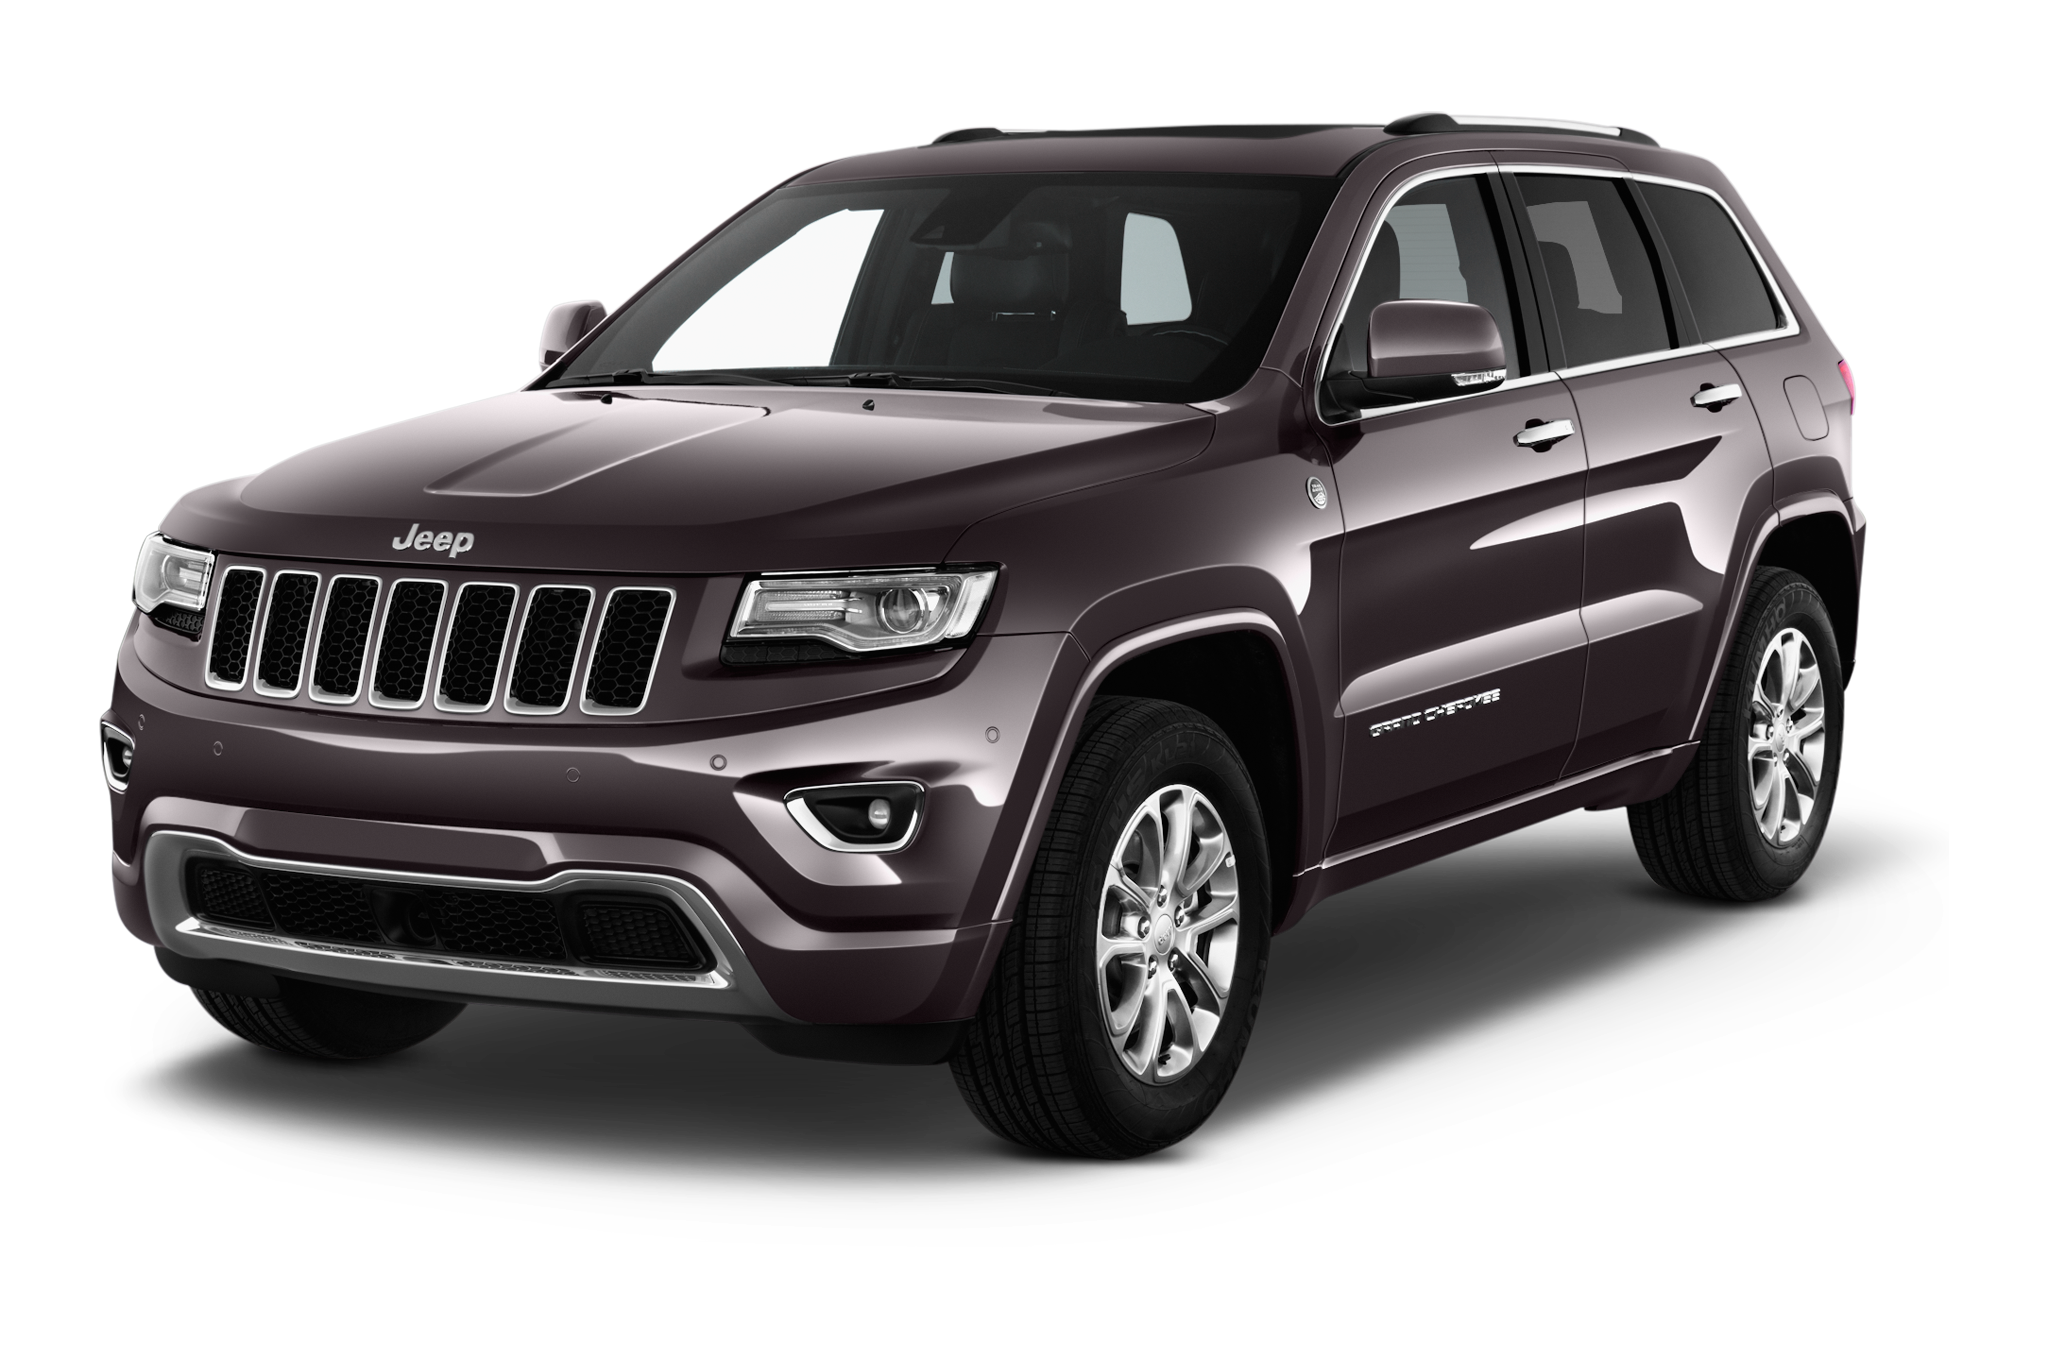 2017 jeep grand cherokee laredo vehicle comparison msn autos. Black Bedroom Furniture Sets. Home Design Ideas